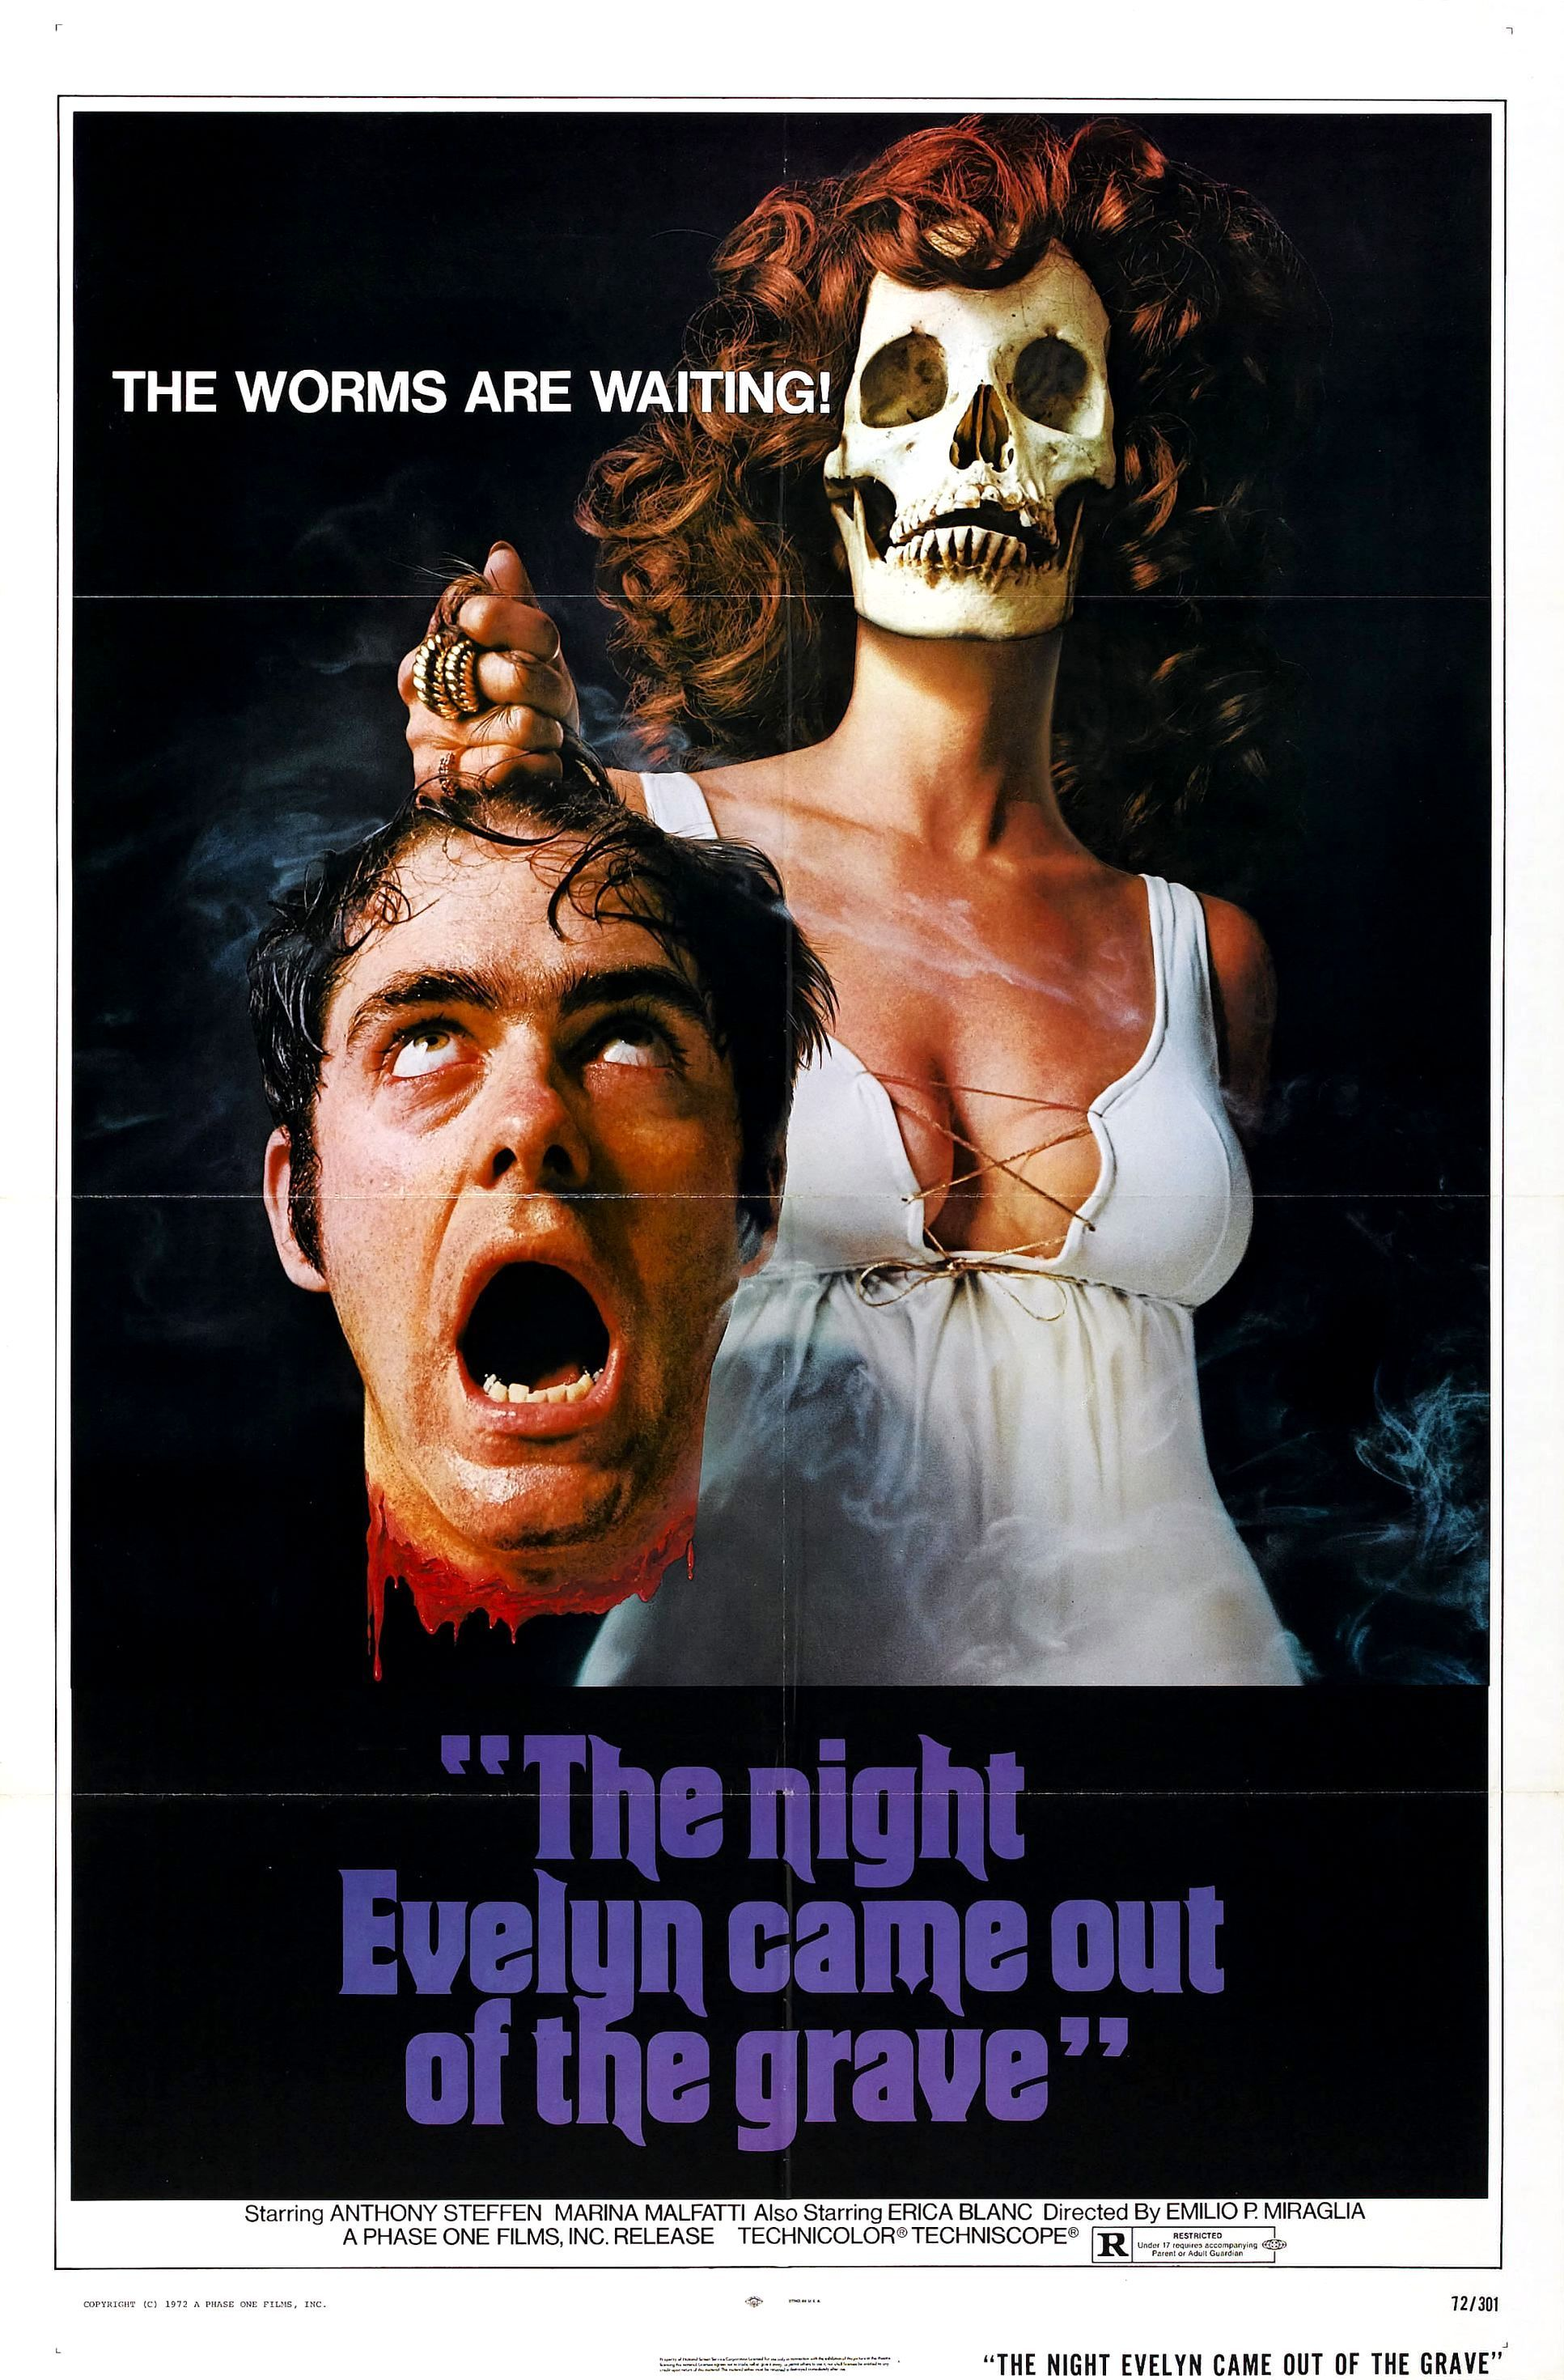 Cult Horror movie poster print The Night Evelyn Came Out of the Grave 1971